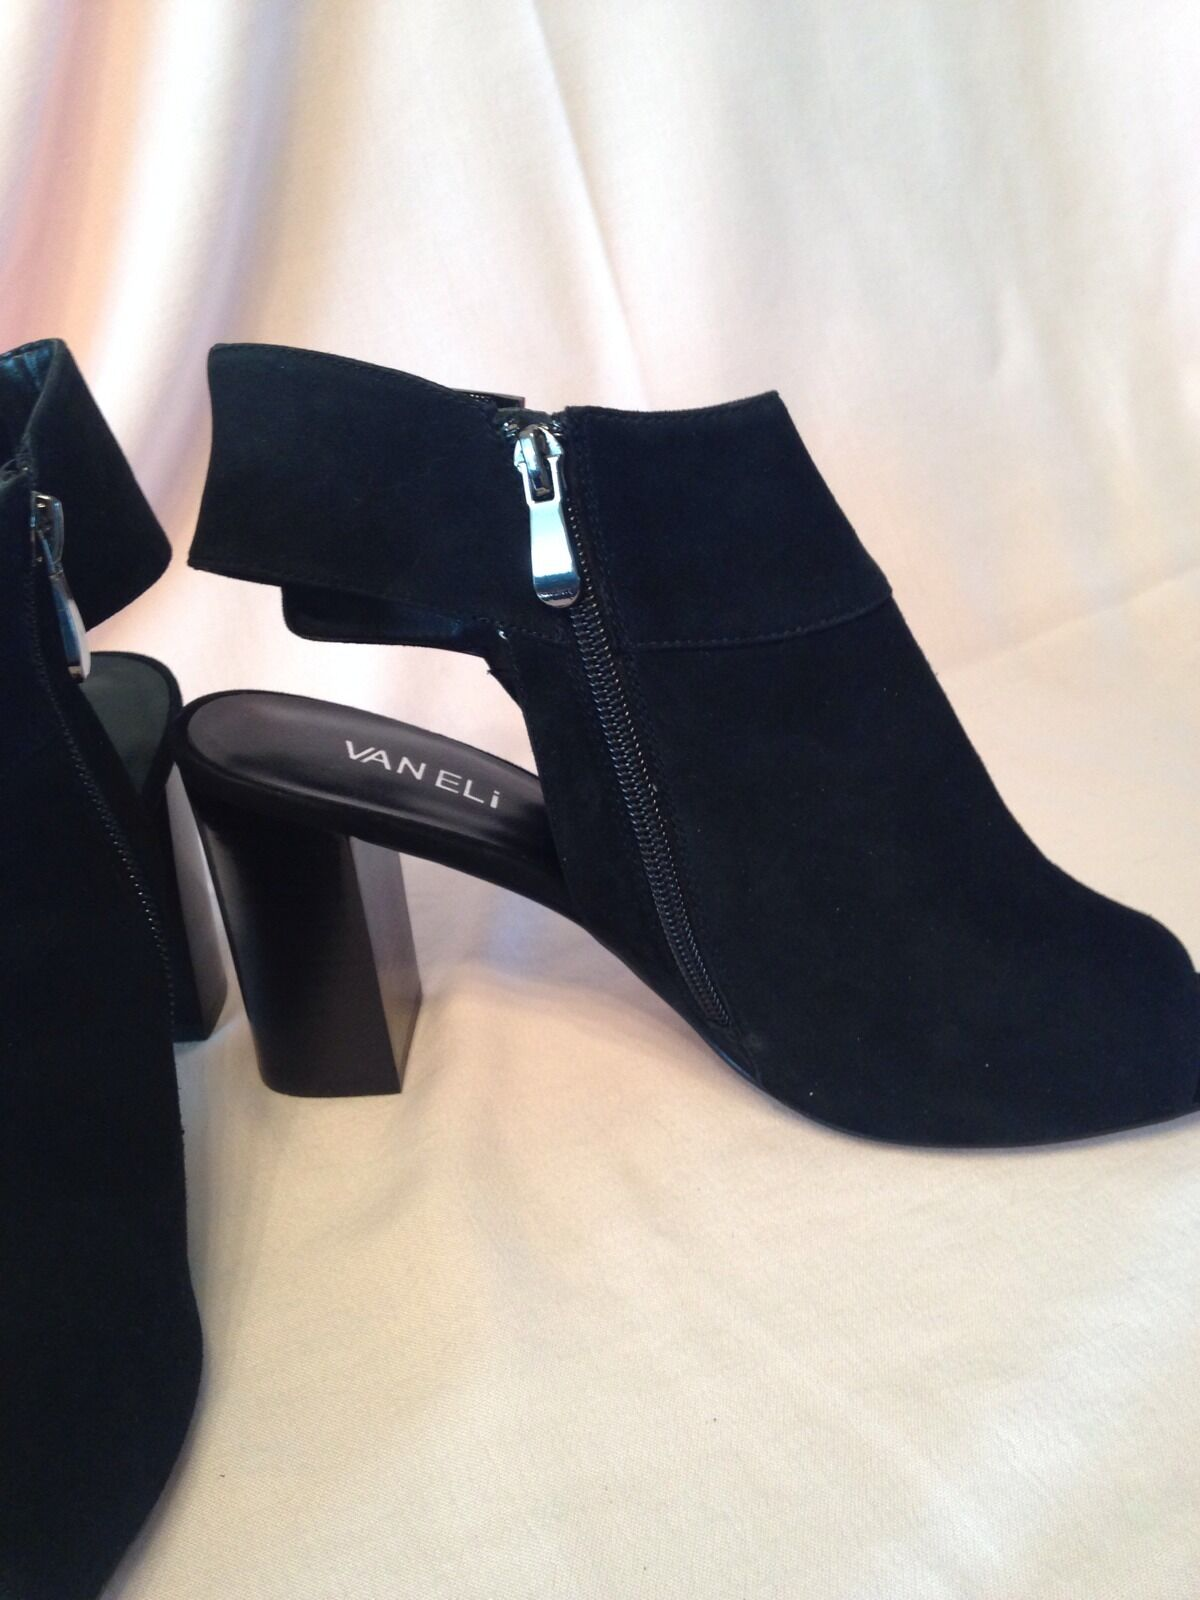 VanEli Brand-New Bootie Ankle shoes shoes shoes Size 10 M 04553a